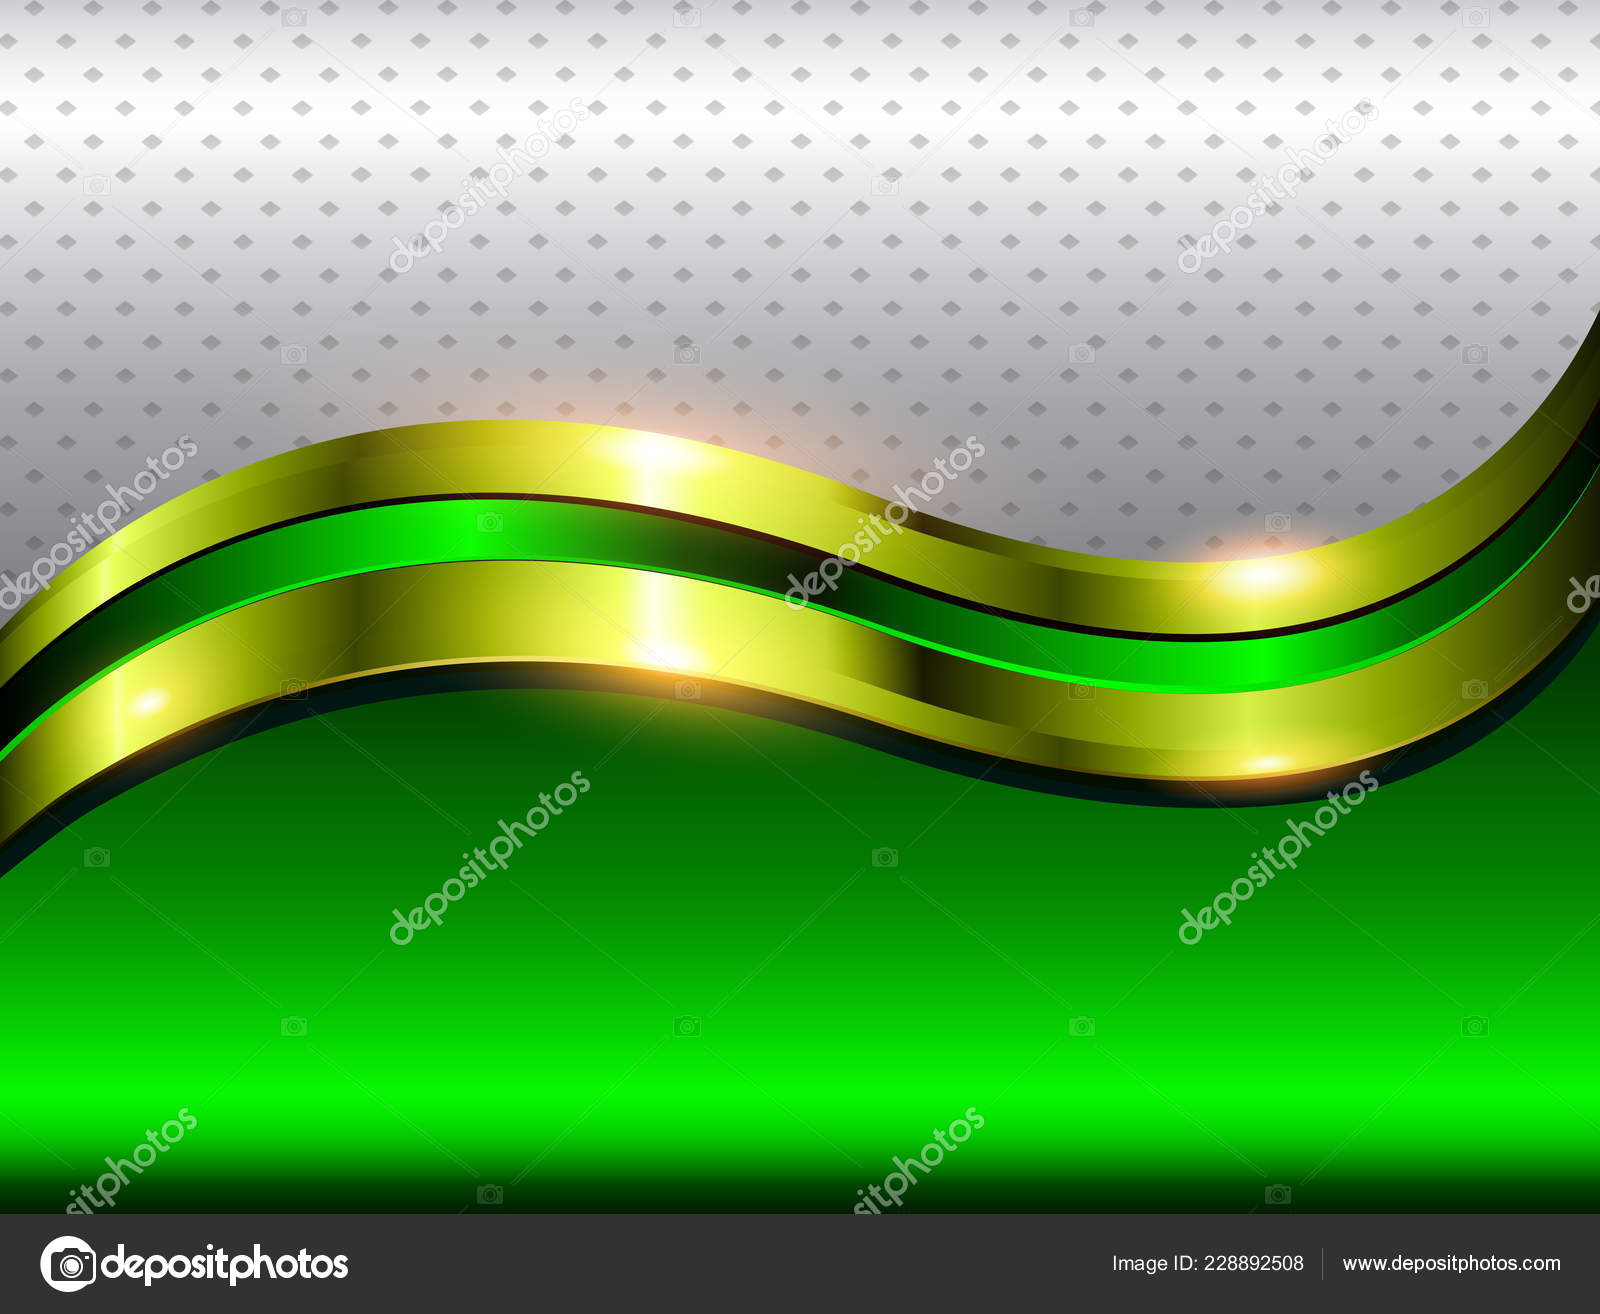 Background Green Gold Abstract Abstract Background Green